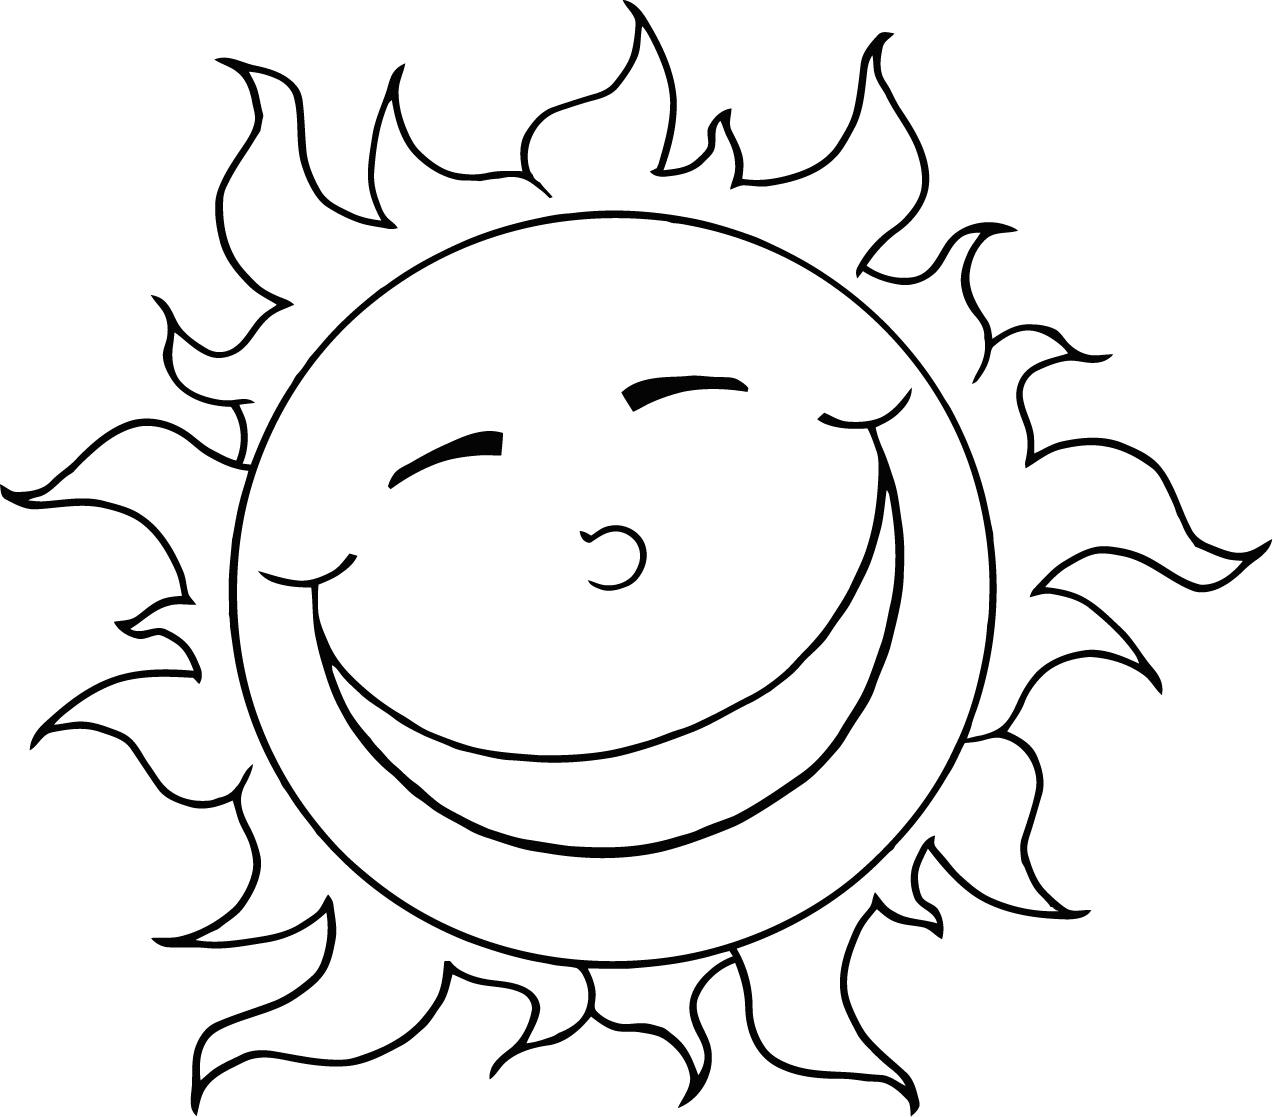 Sun coloring pages to download - 86.4KB